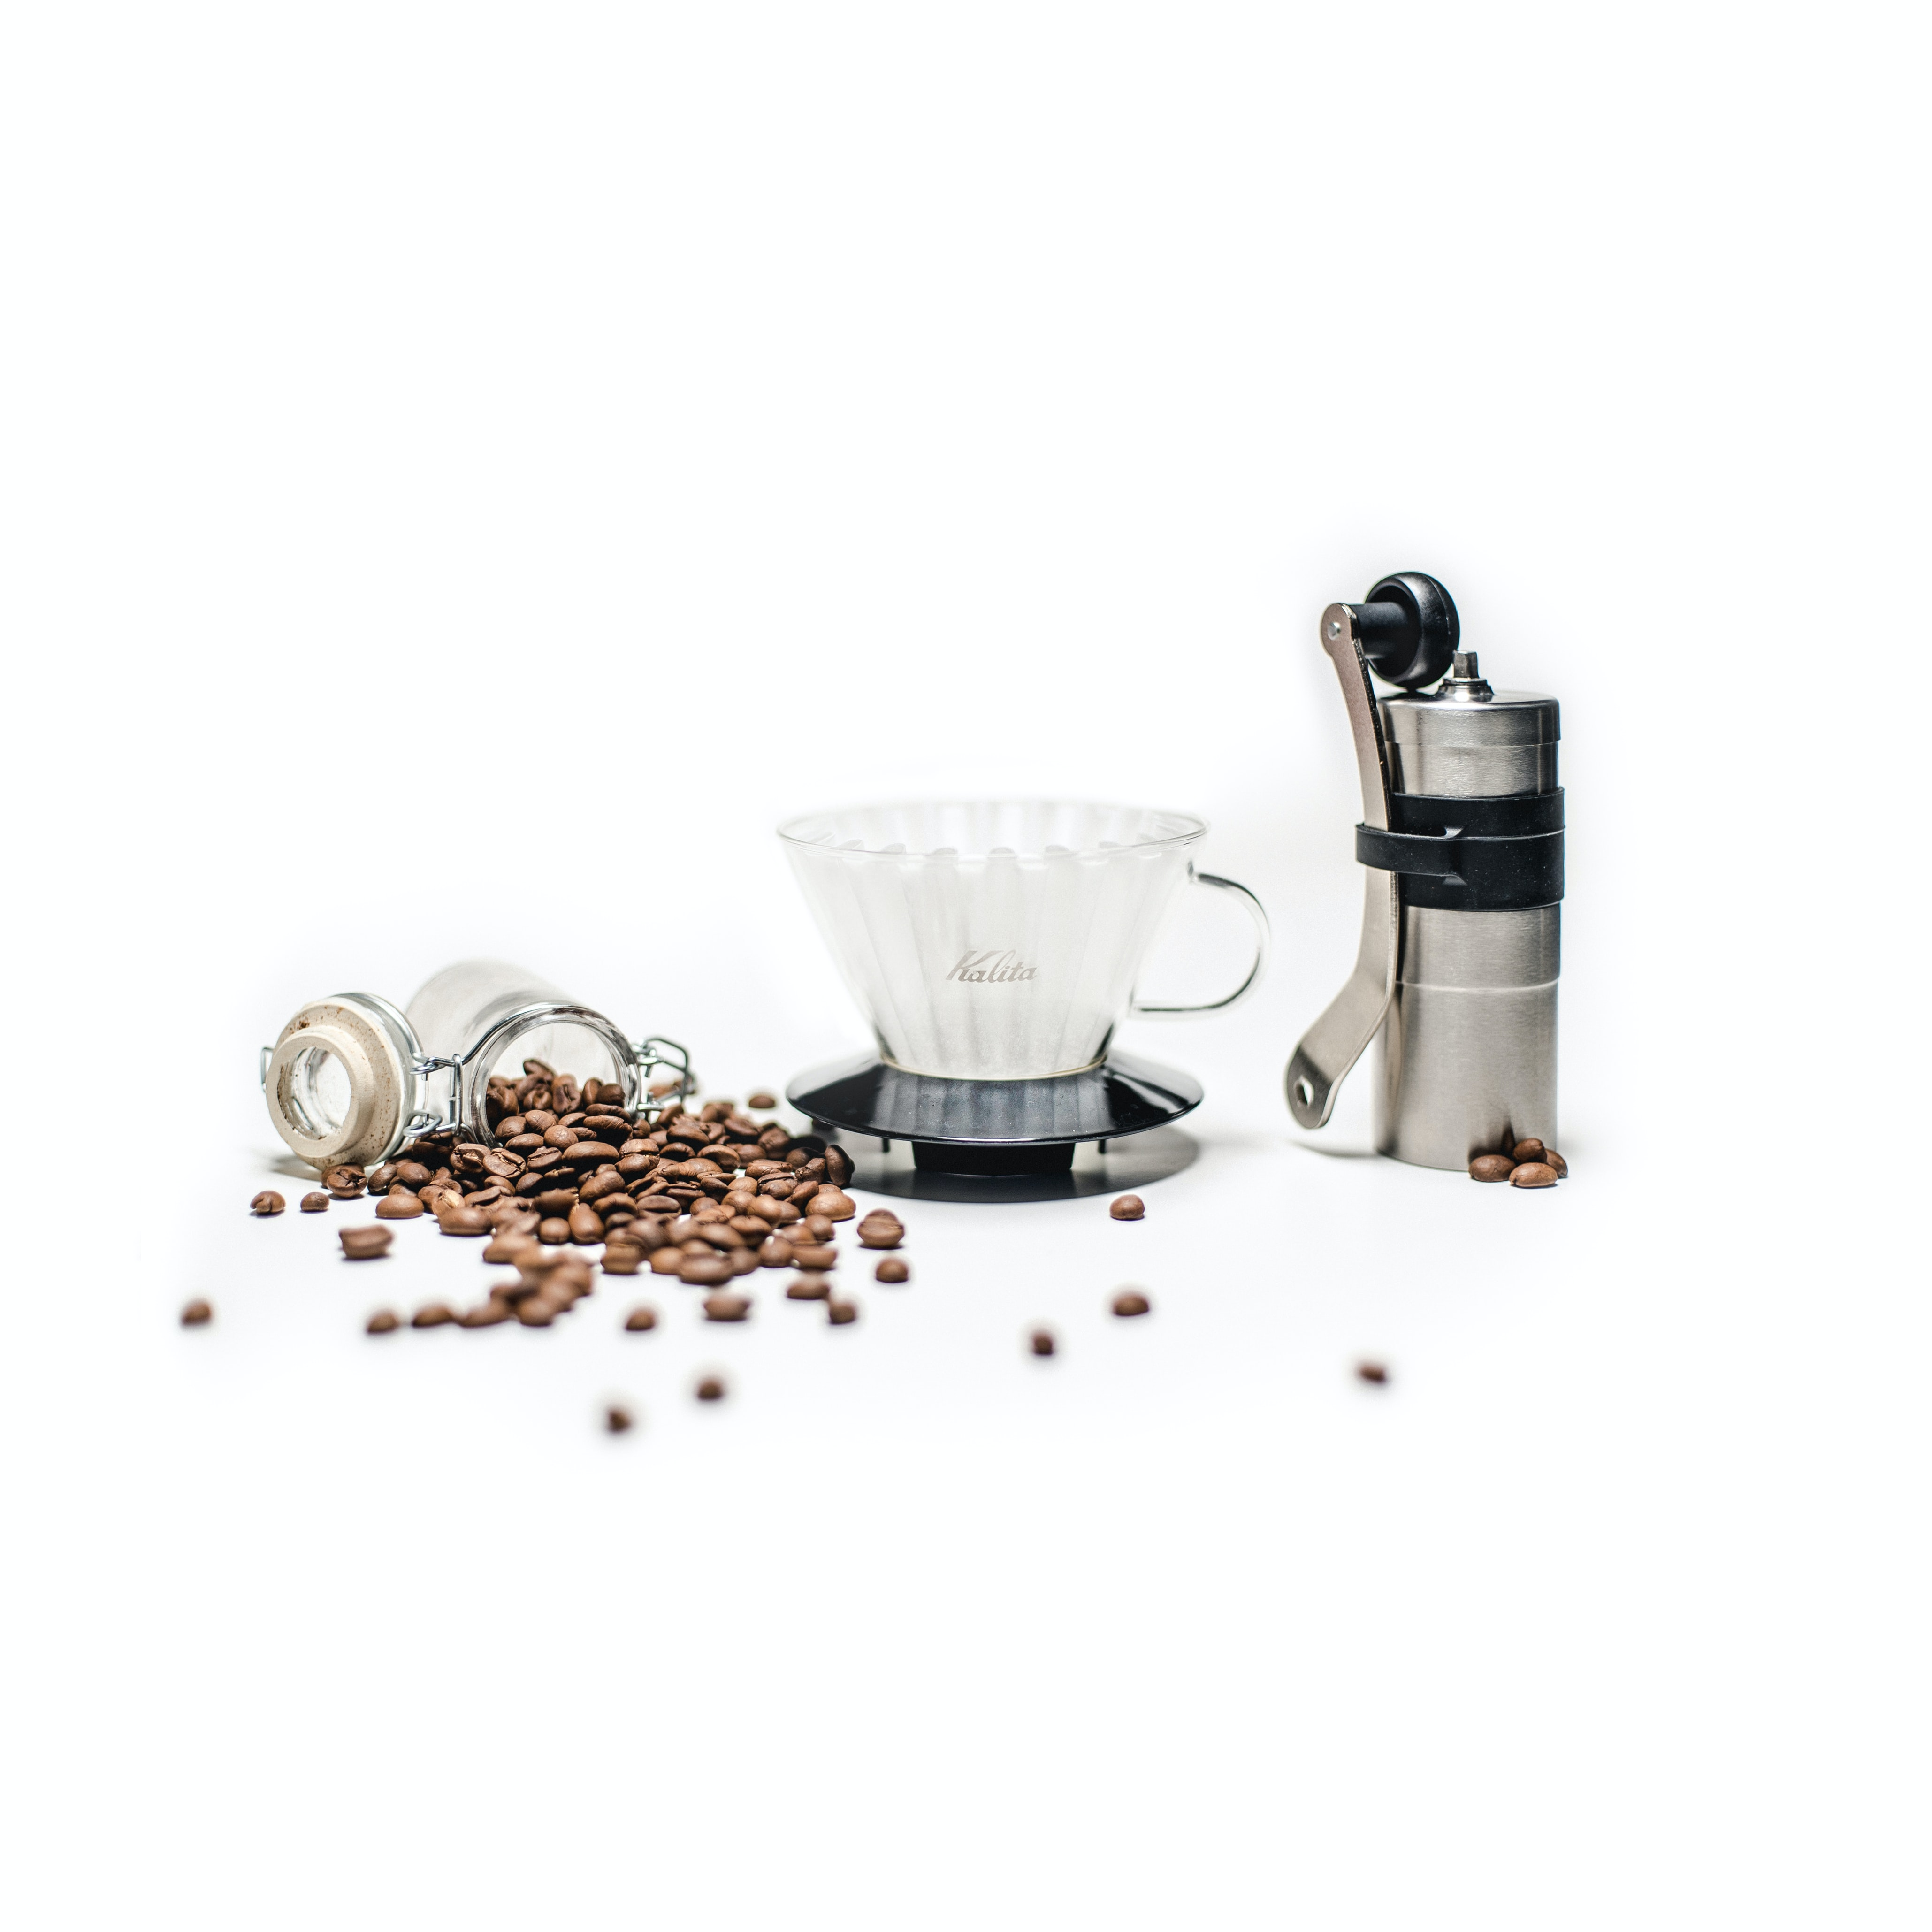 Coffee beans spill out of jar near coffee grinder and mug with filter